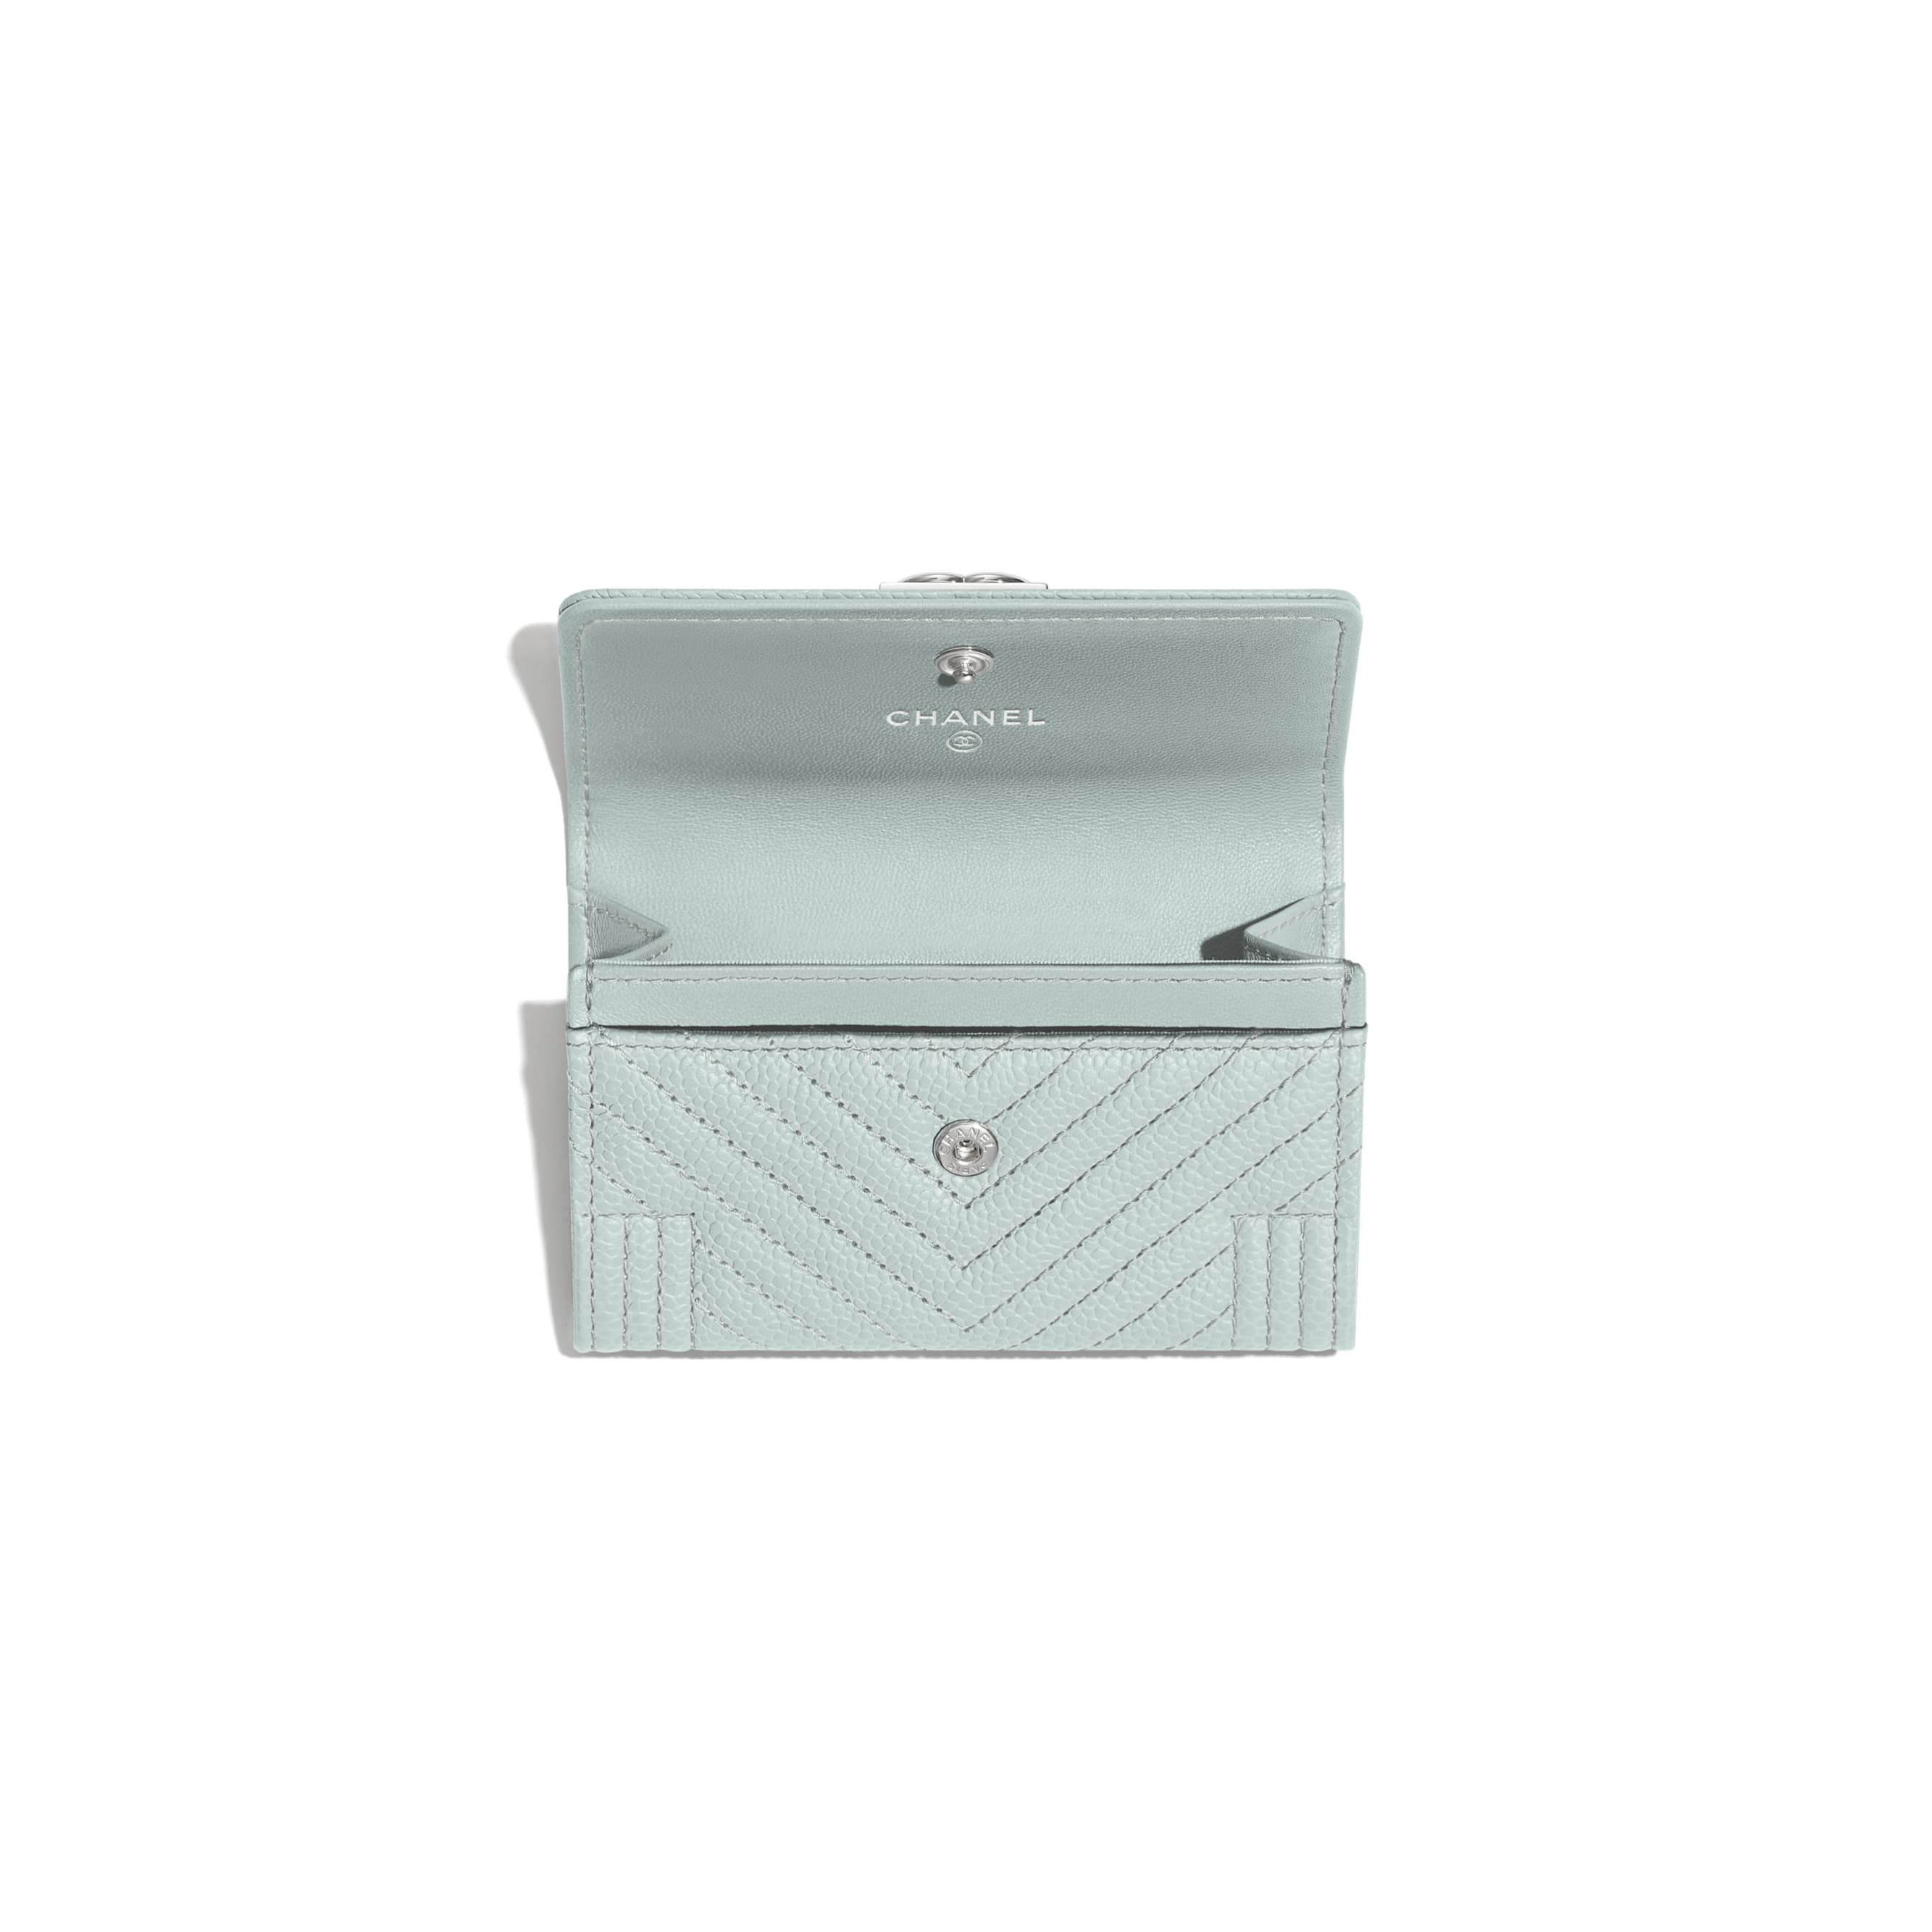 BOY CHANEL Flap Card Holder - Light Blue - Shiny Grained Calfskin & Silver-Tone Metal - CHANEL - Other view - see standard sized version